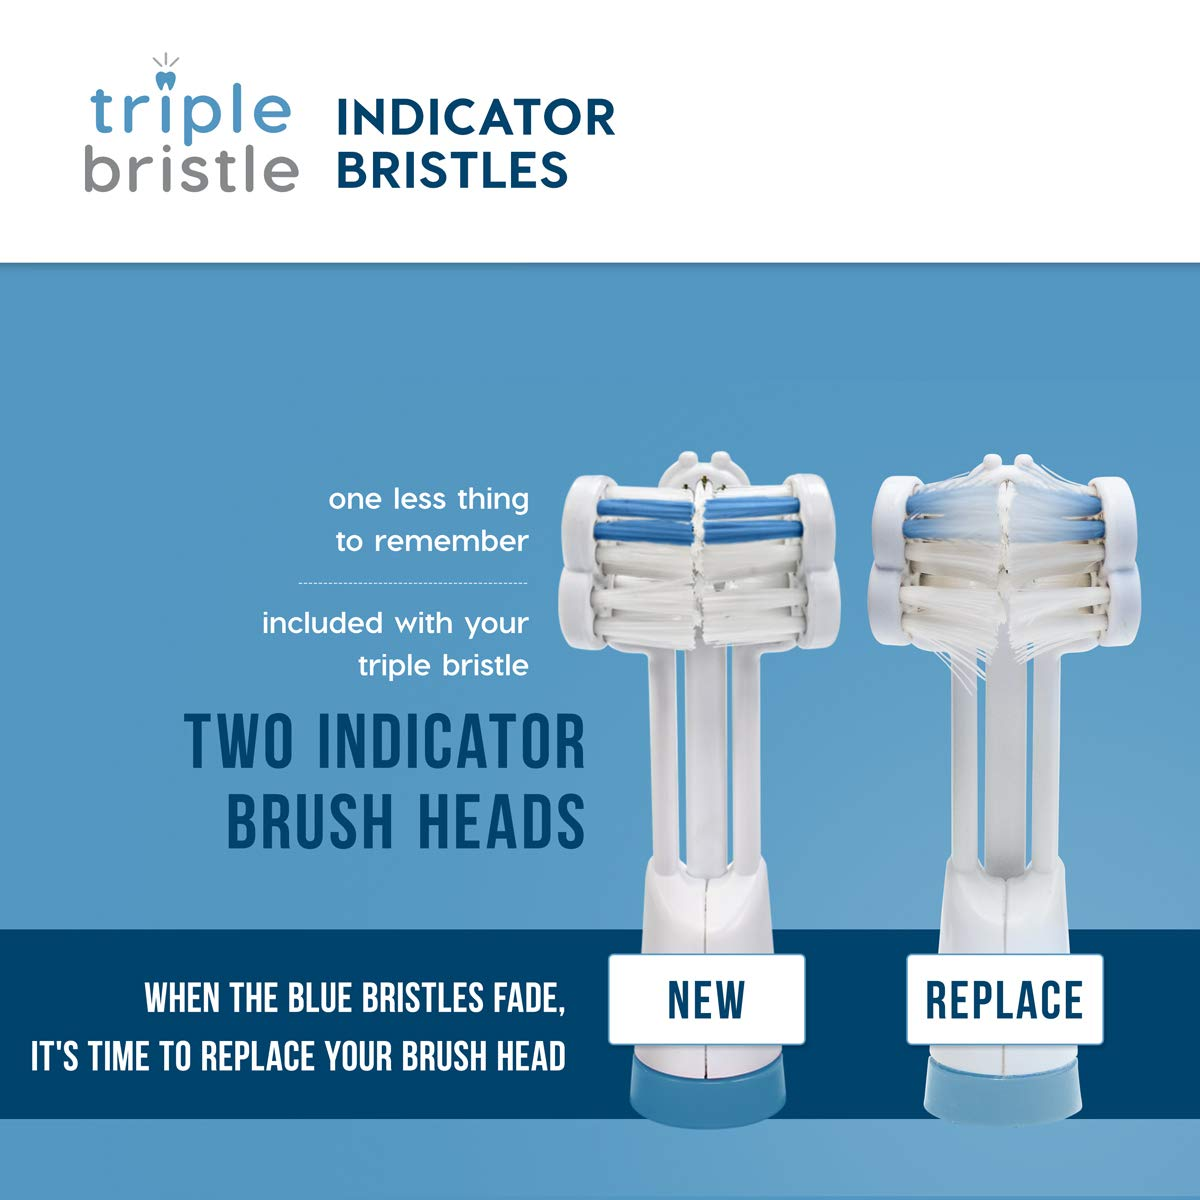 Triple Bristle Best Sonic Electric Toothbrush - Whiter Teeth & Brighter Smile - Rechargeable 31,000 VPM Tooth Brush is Unique & Patented 3 Brush Head Design - Perfect Angle Bristles Clean Each Tooth by Triple Bristle (Image #8)